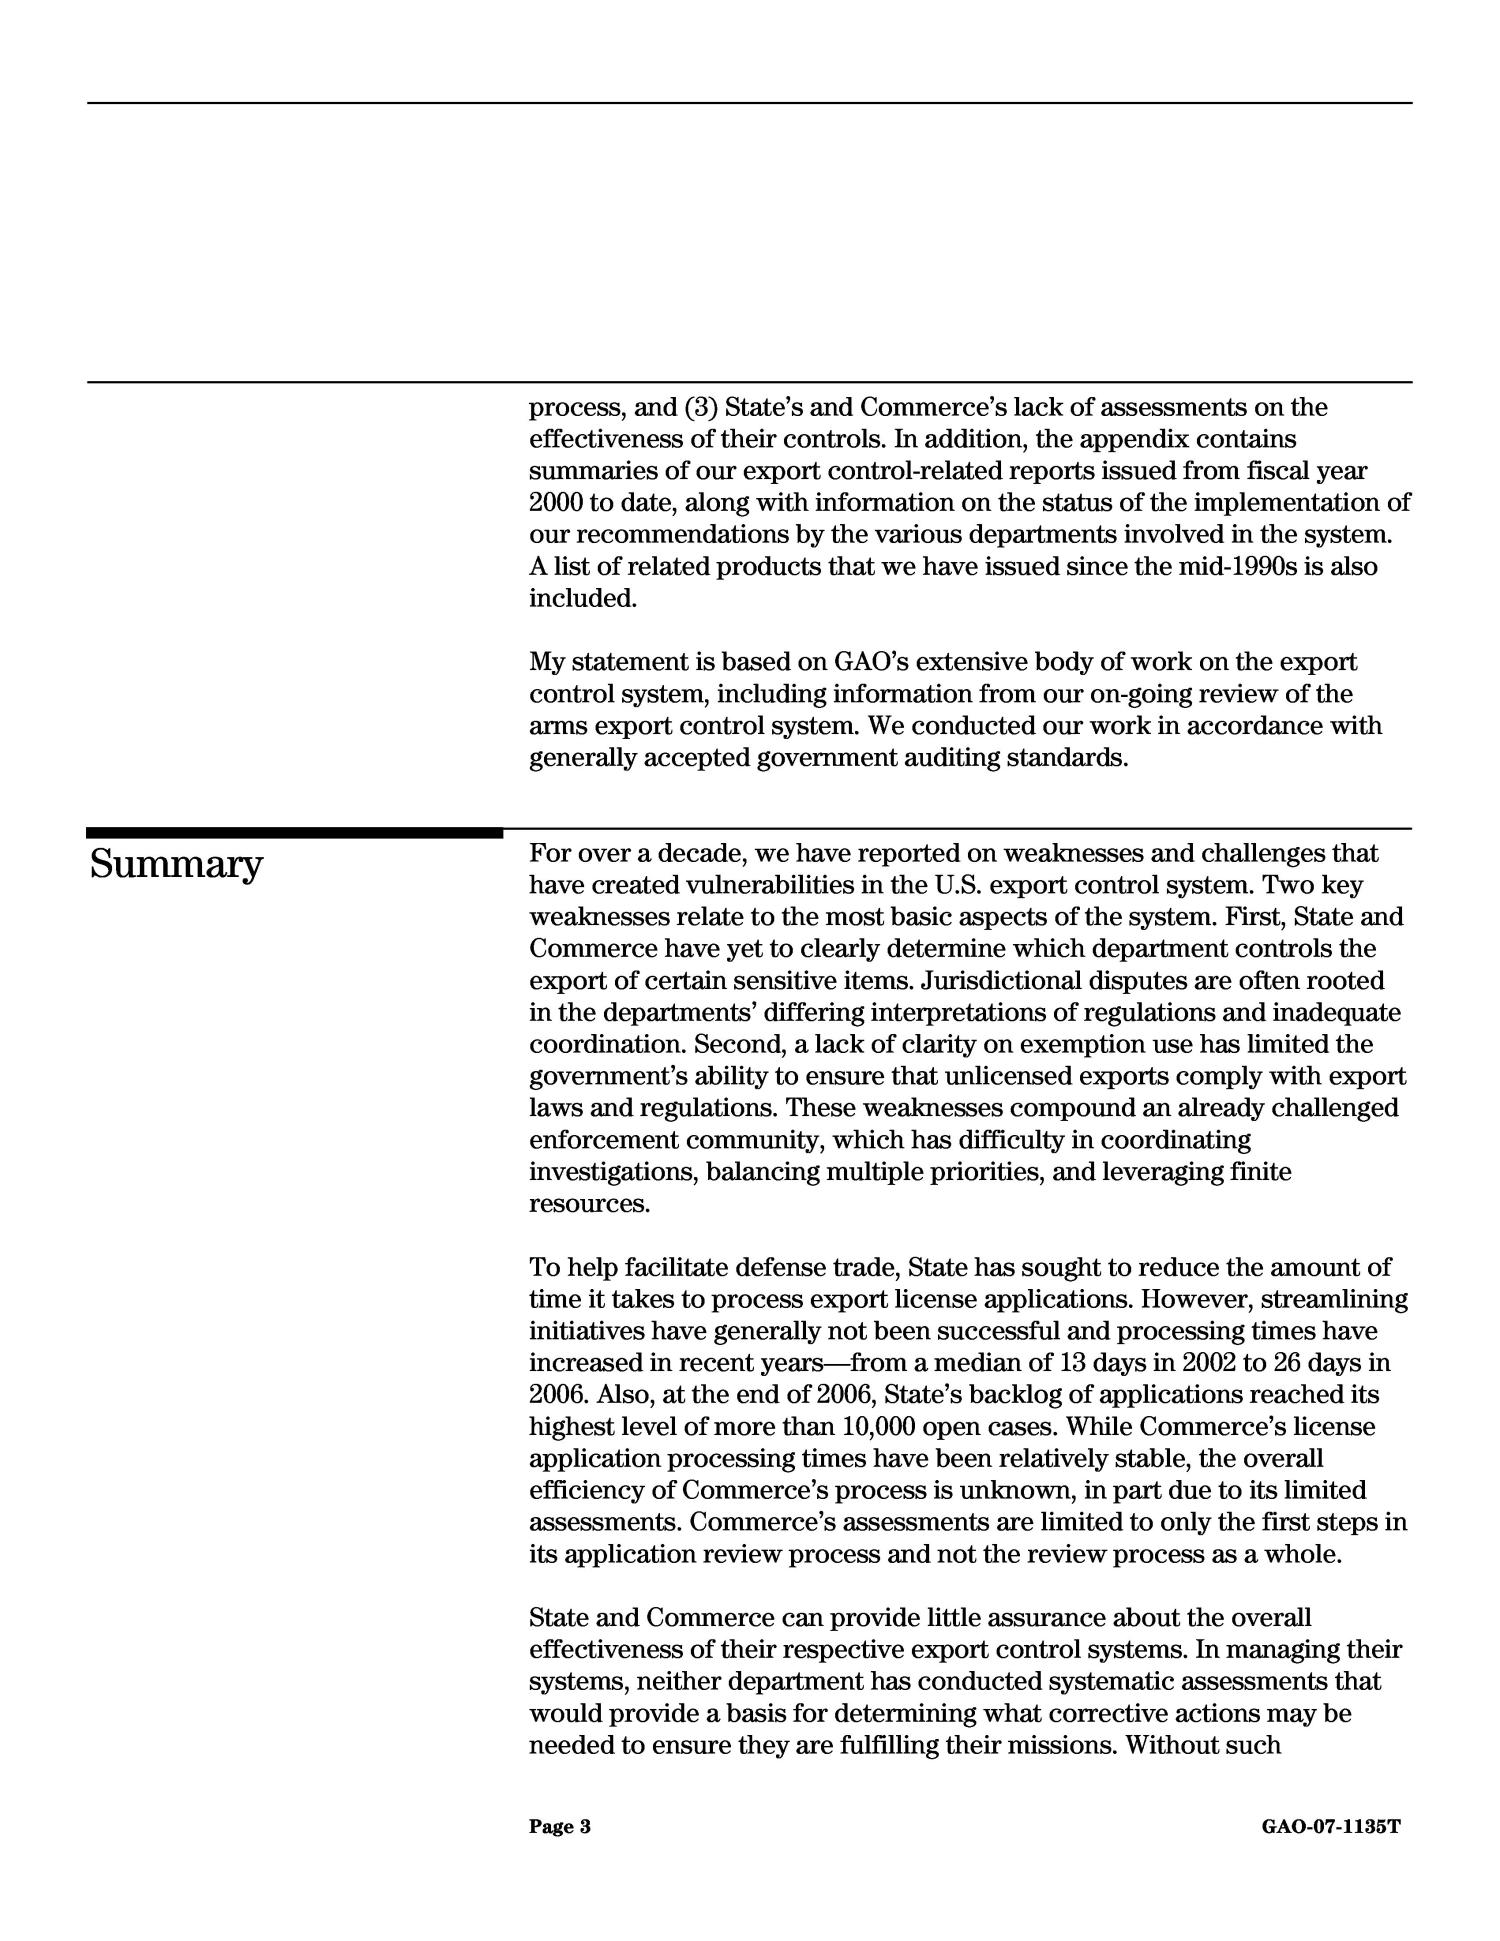 Export Controls: Vulnerabilities and Inefficiencies Undermine System's Ability to Protect U.S. Interests                                                                                                      [Sequence #]: 4 of 37